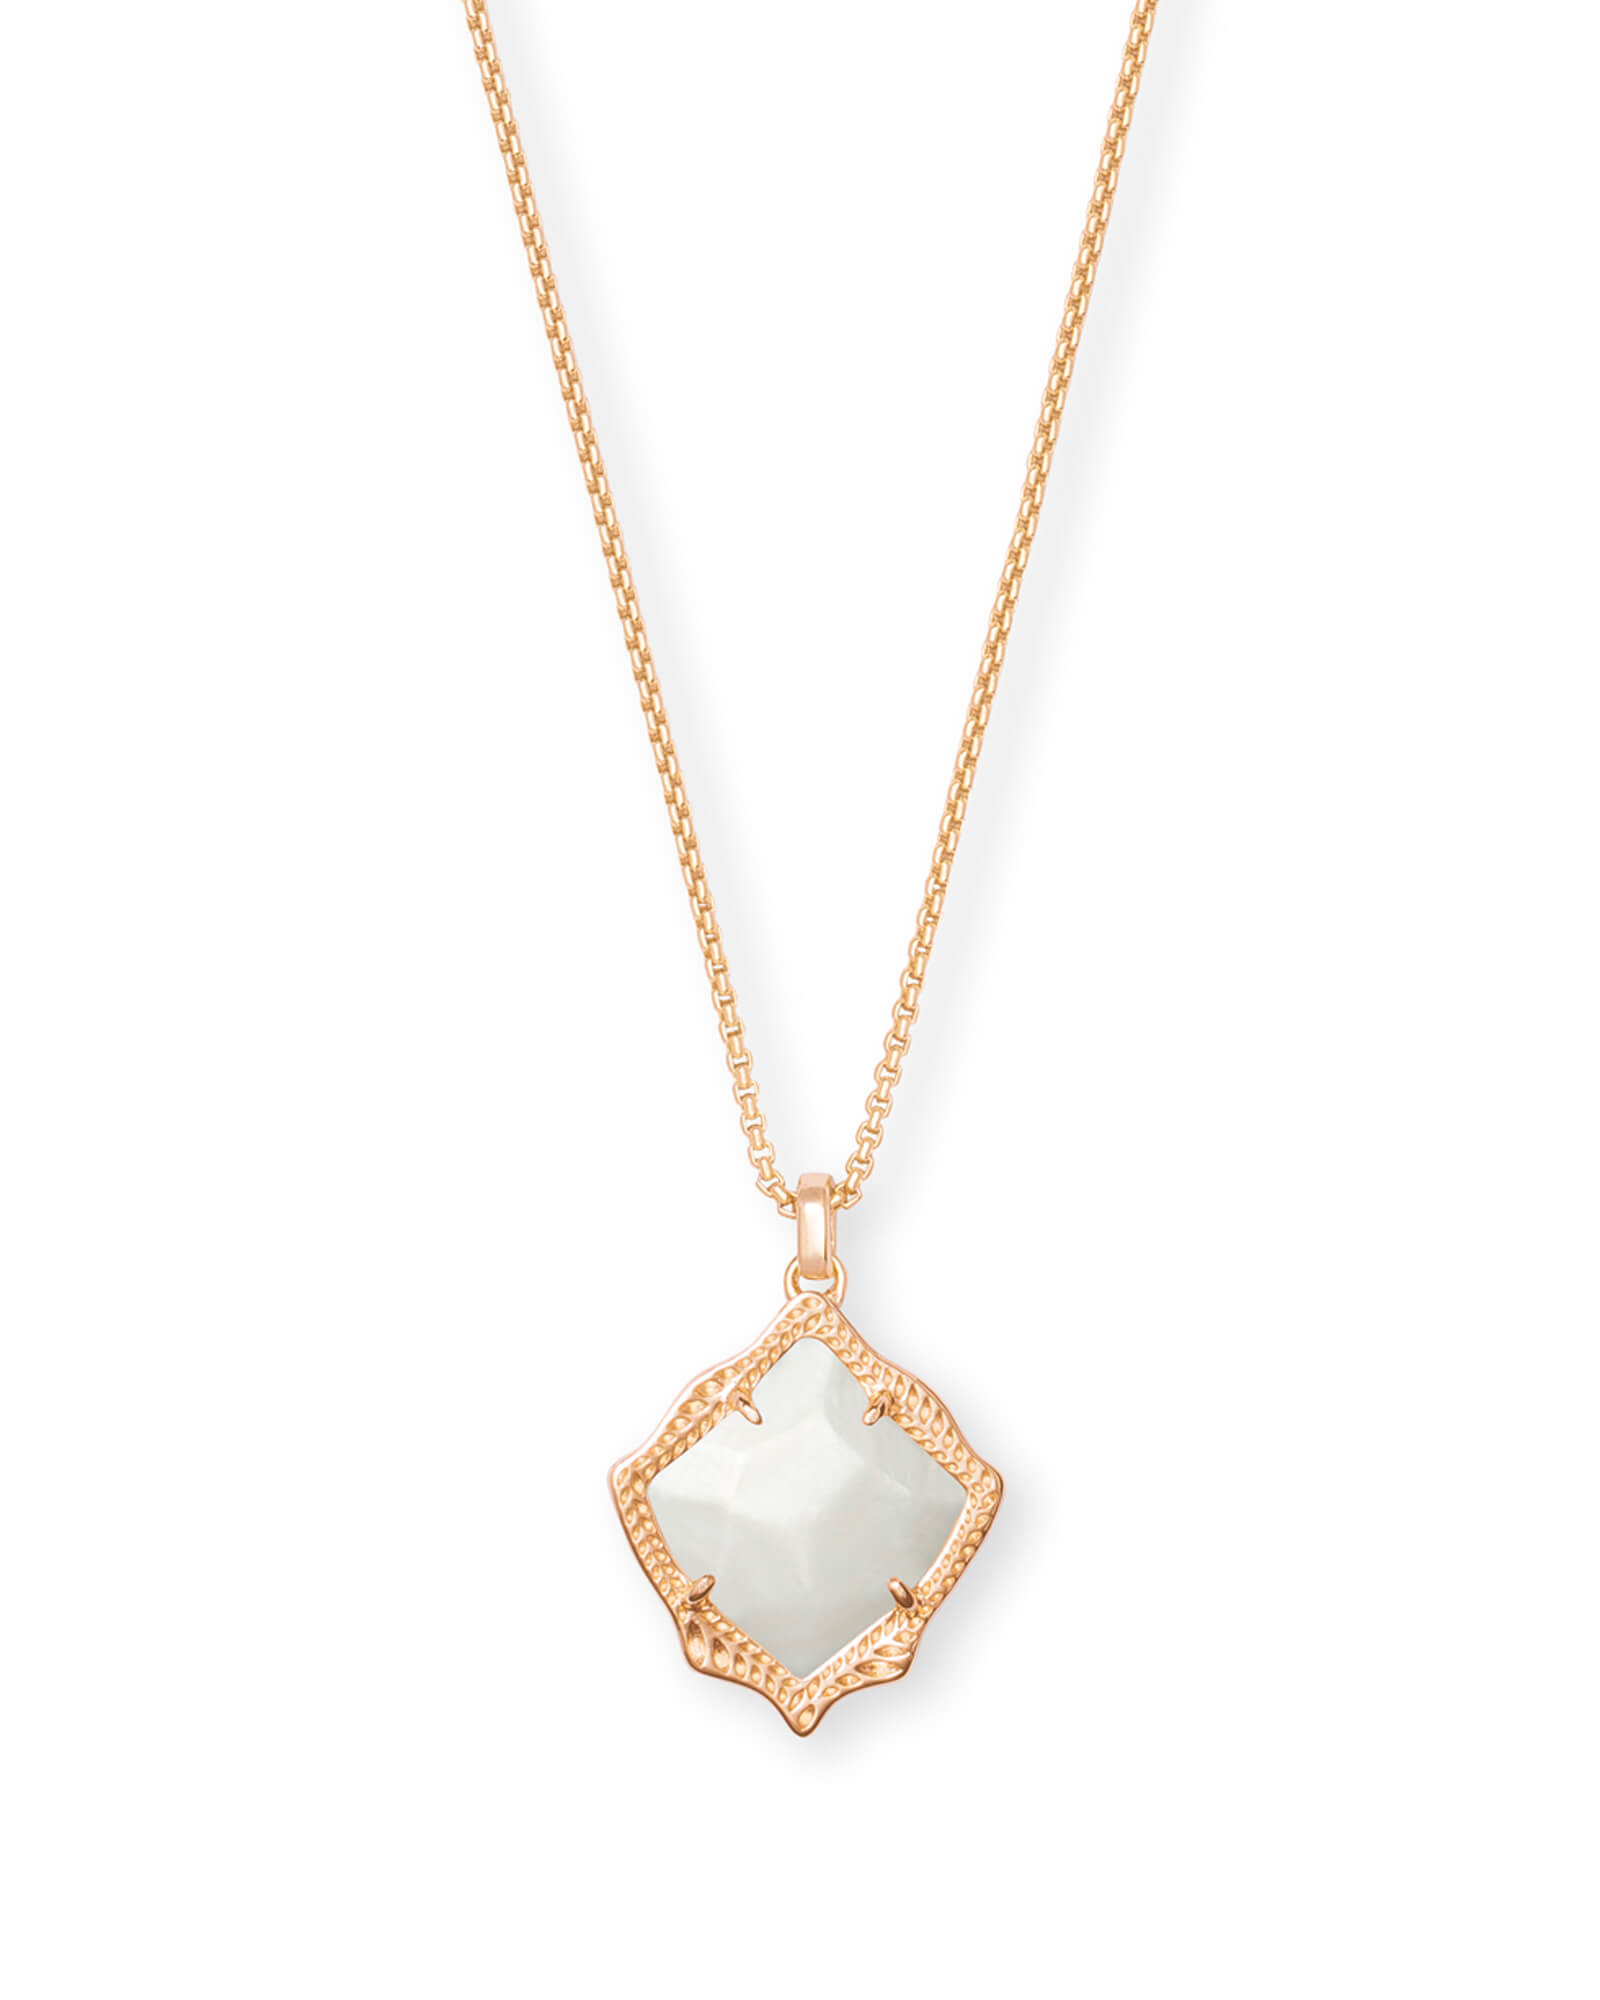 Kacey Rose Gold Long Pendant Necklace in Ivory Pearl